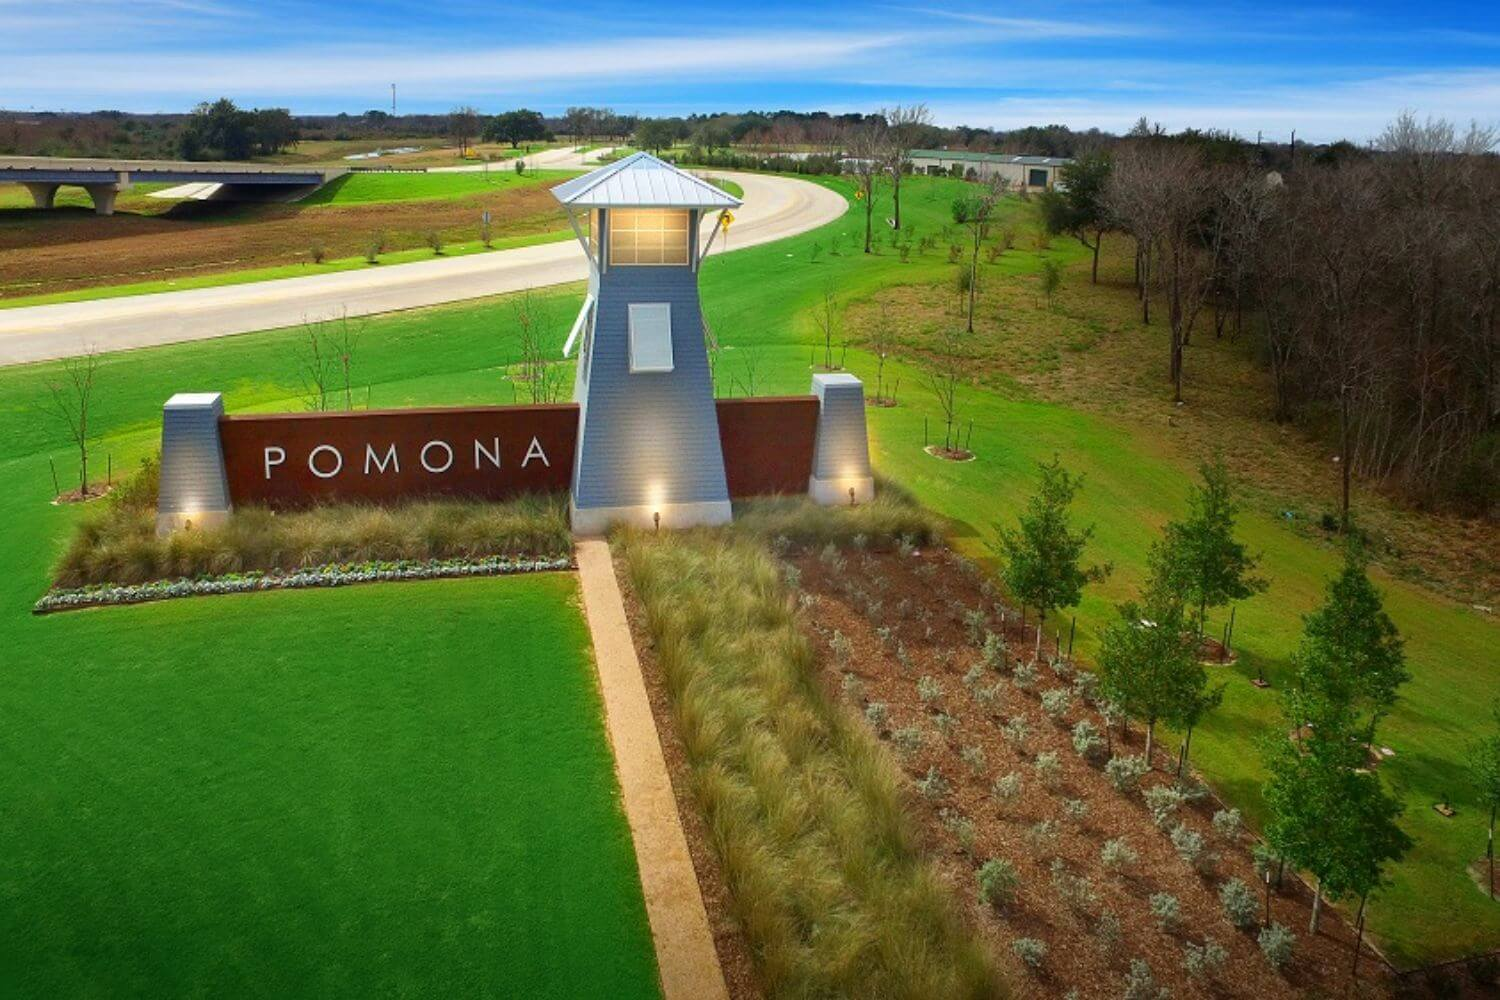 Pomona Entrance Monument